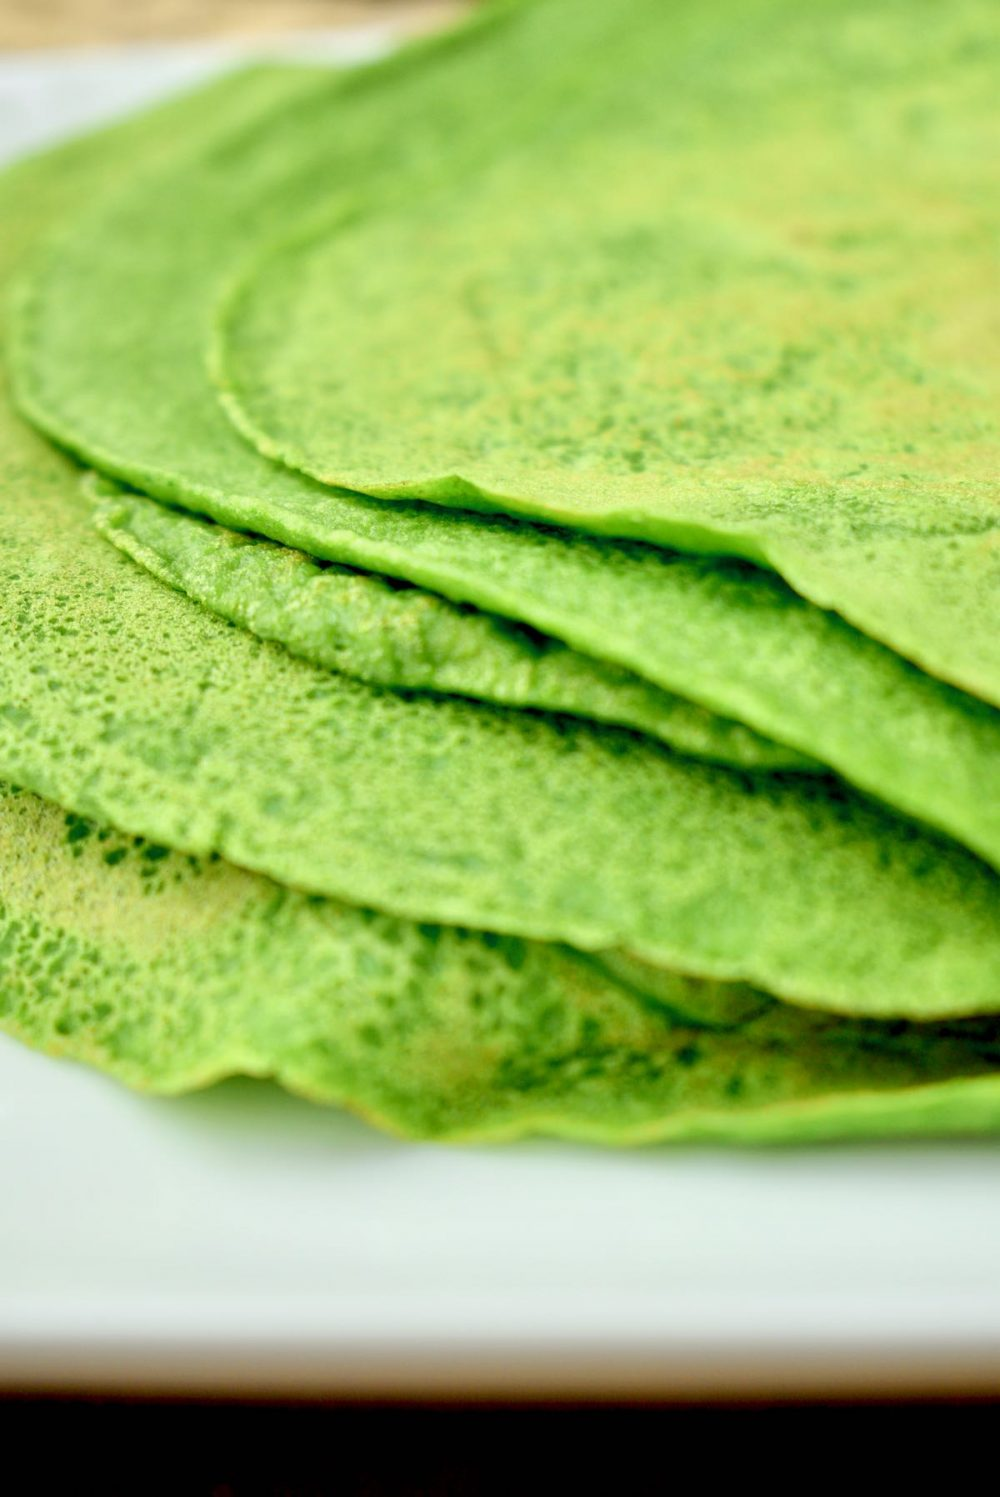 Five bright green, thin, crepe style pancakes on a white plate